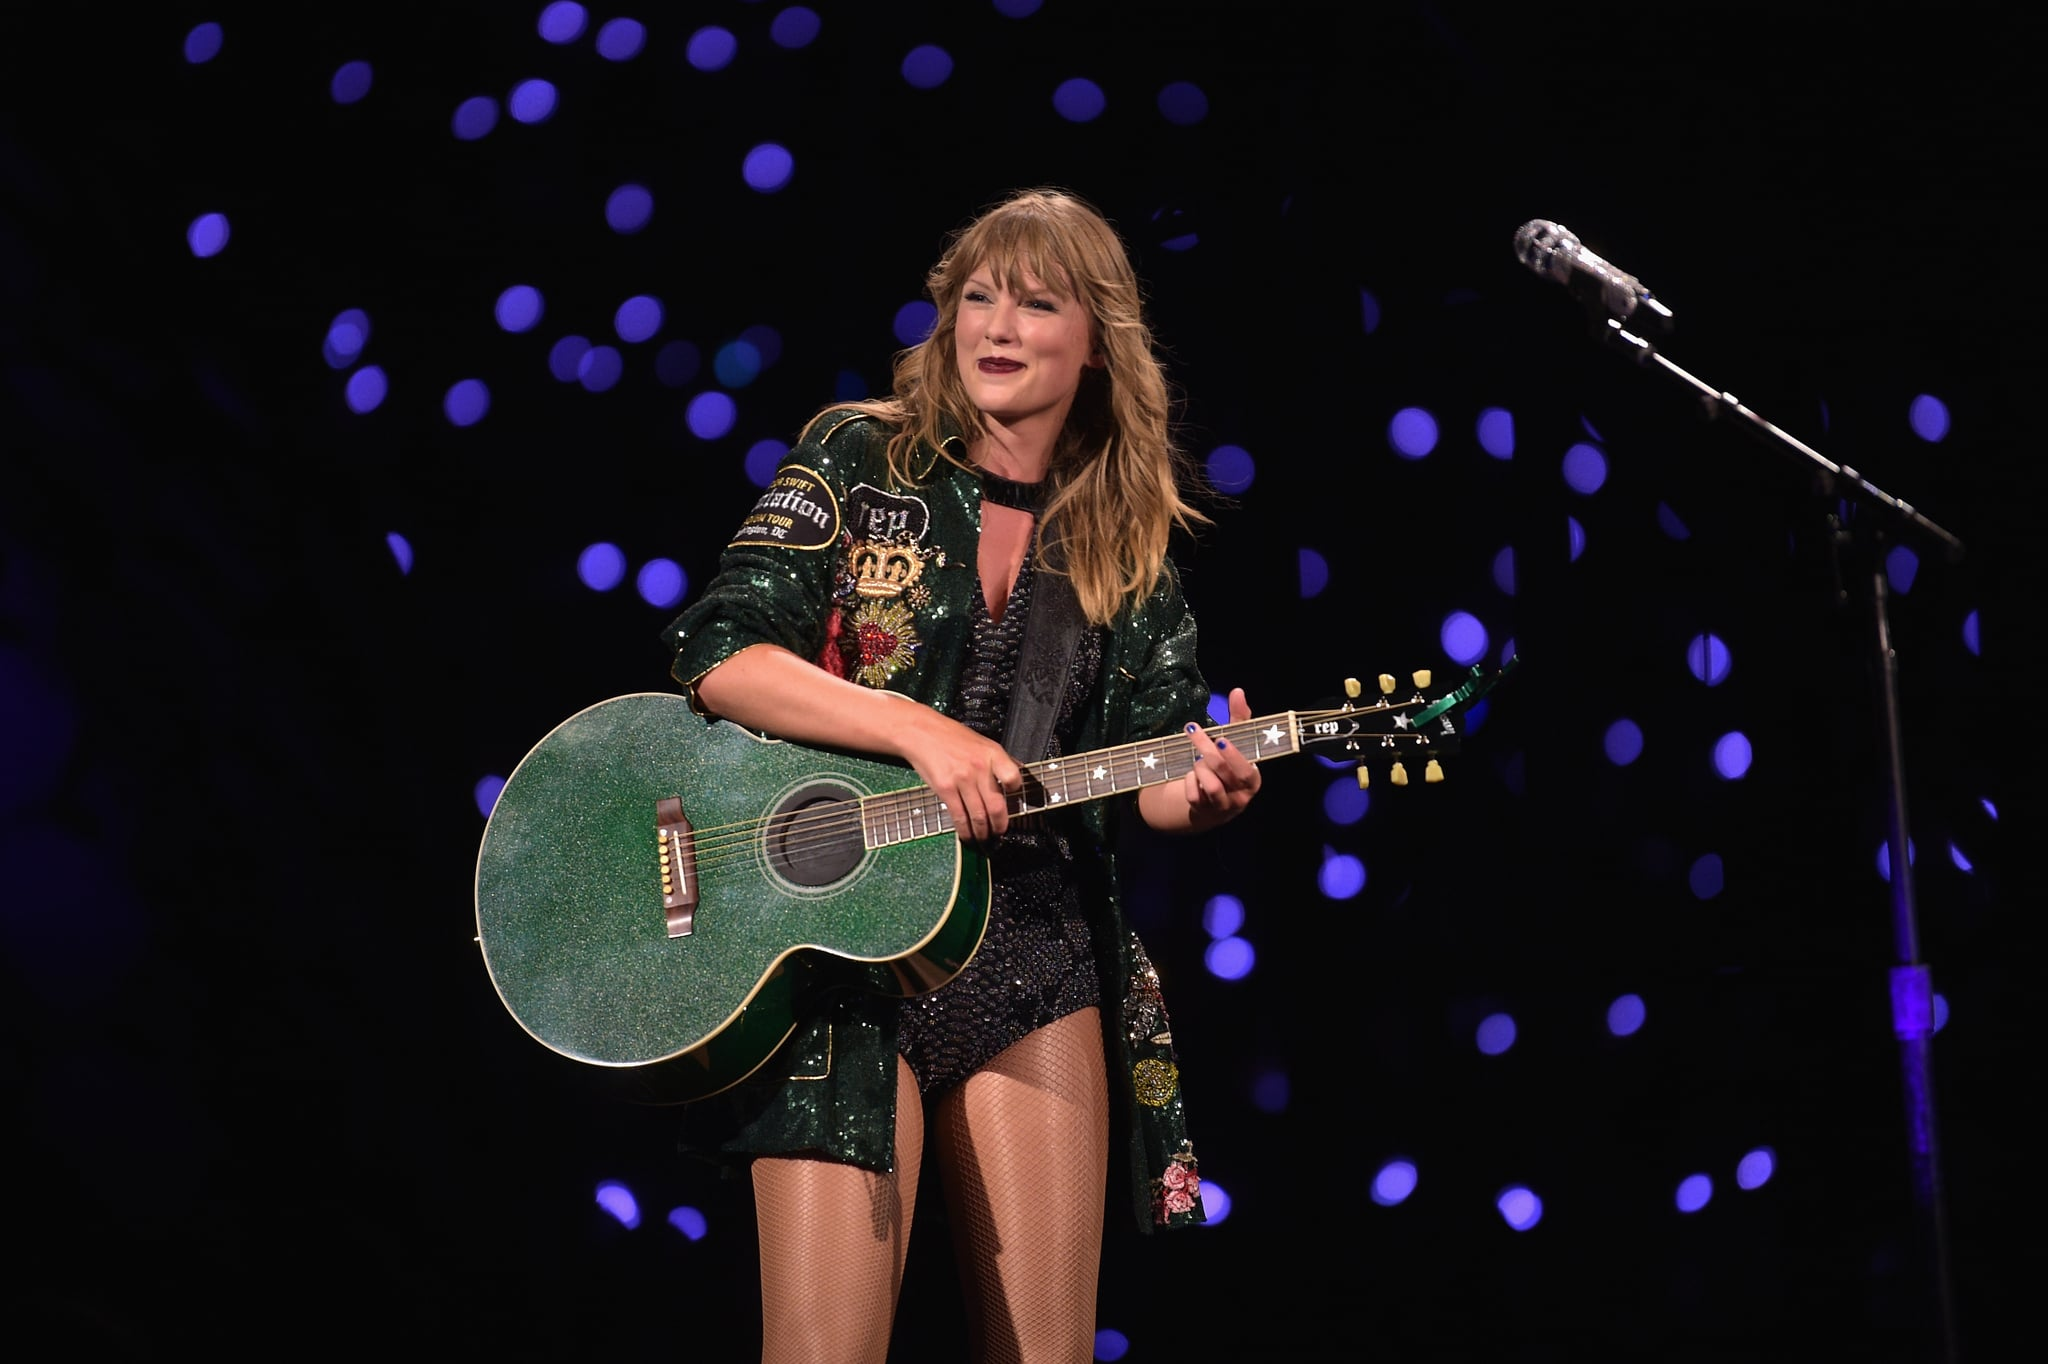 LANDOVER, MD - JULY 10:  Taylor Swift performs onstage during the Taylor Swift reputation Stadium Tour at FedExField on July 10, 2018 in Landover, Maryland.  (Photo by Jason Kempin/TAS18/Getty Images for TAS)